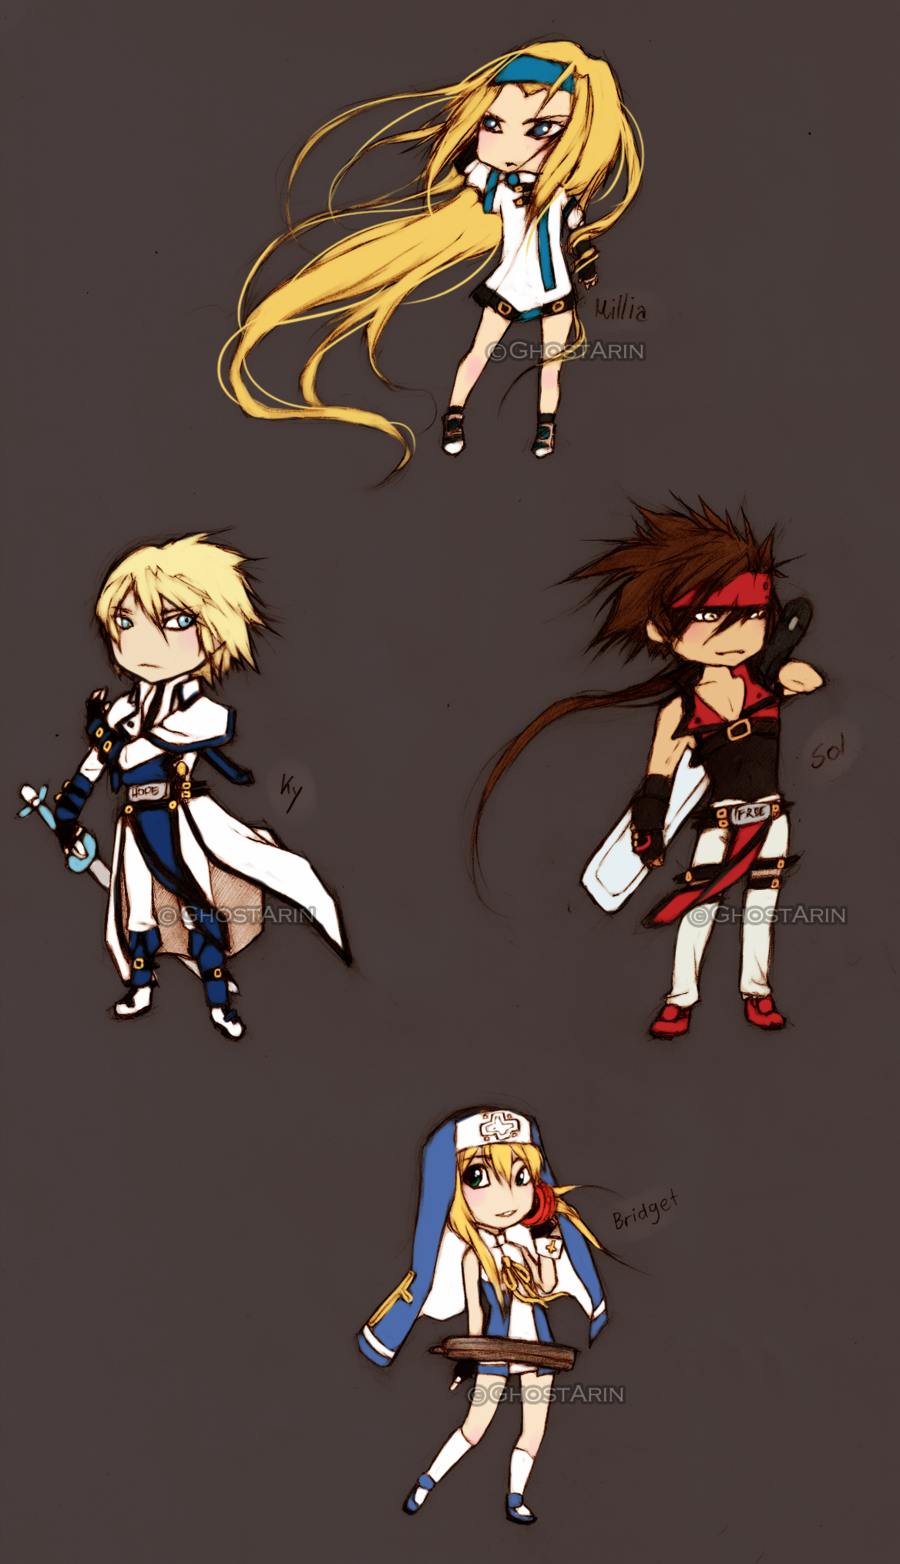 Guilty Gear Chibis by ghostarin